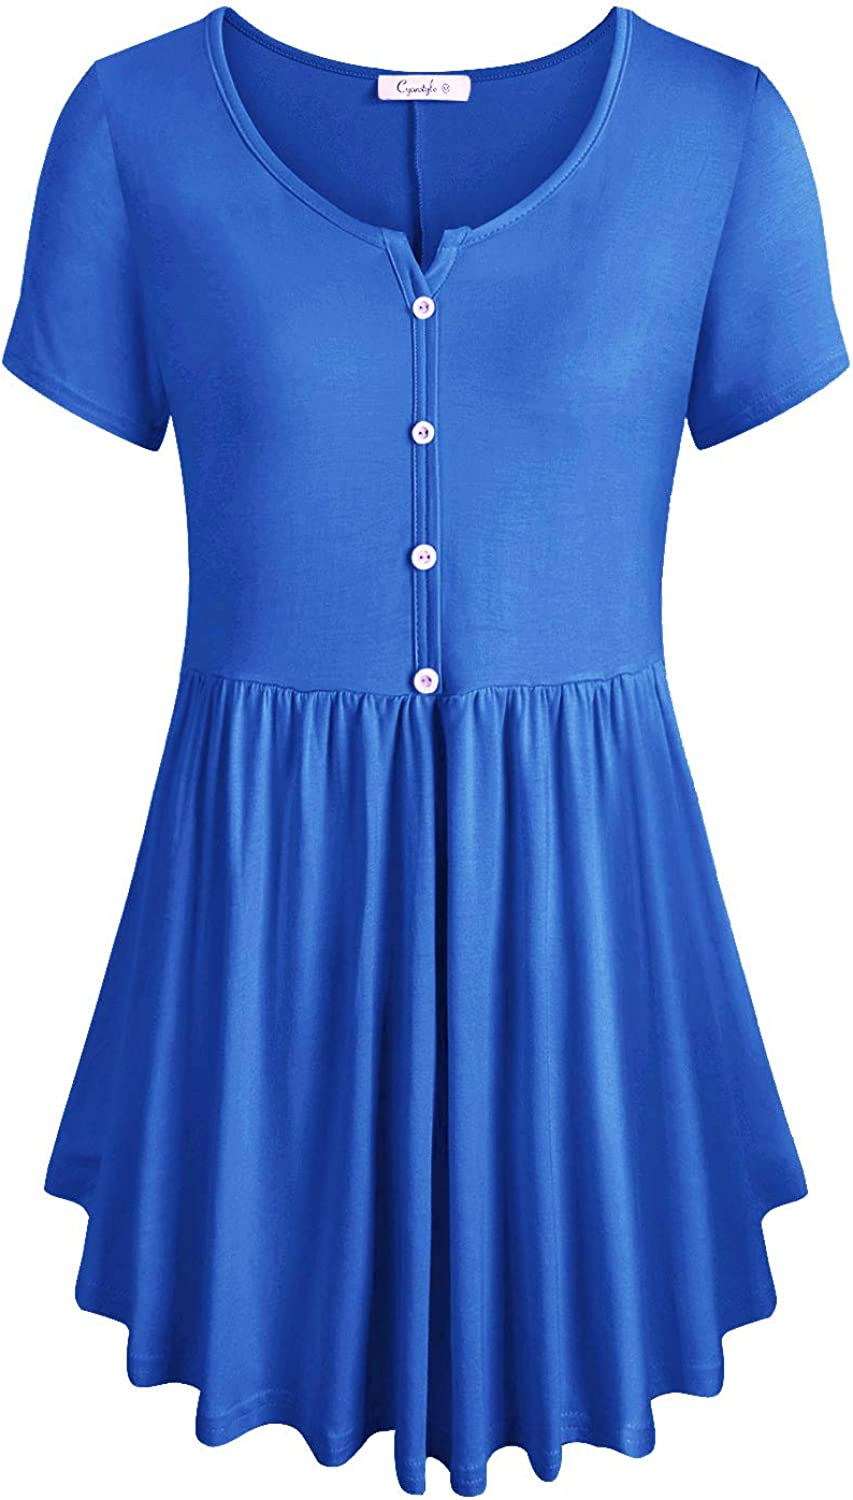 Cyanstyle Women's V Neck Short Sleeve Henley Pleated Casual Tunic Blouse Tops